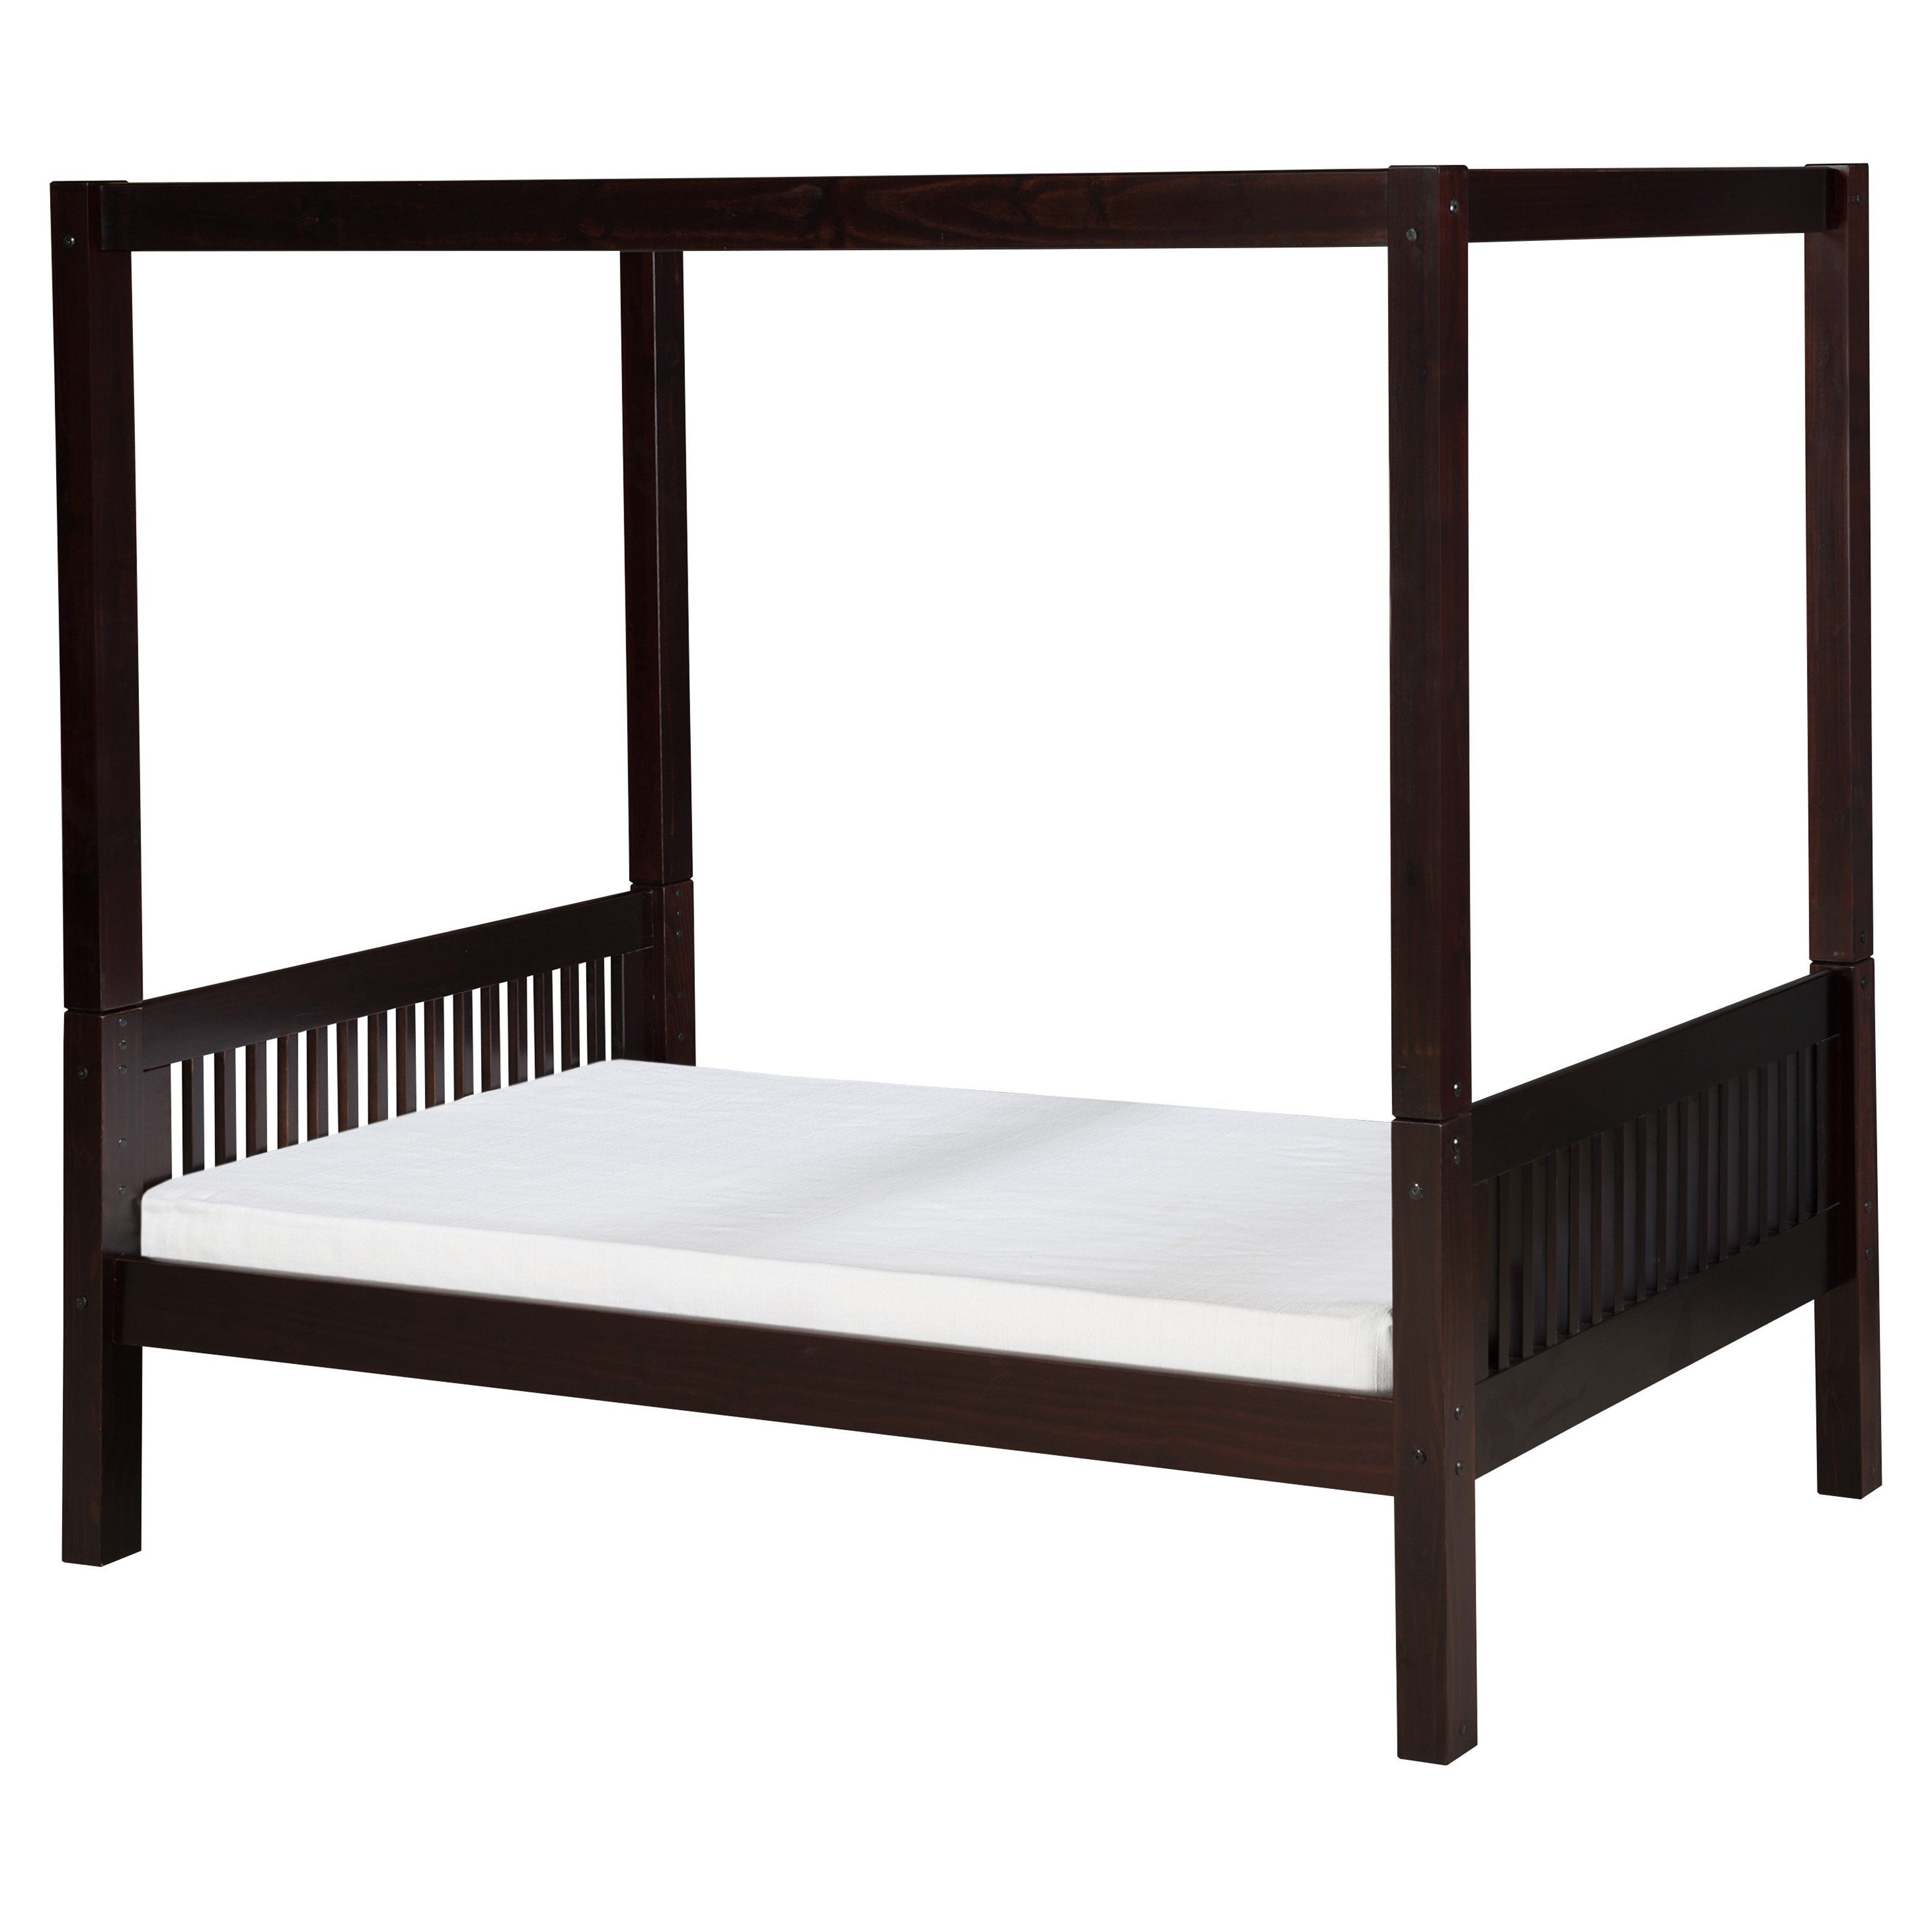 Camaflexi Mission Headboard Canopy Bed - C811NT